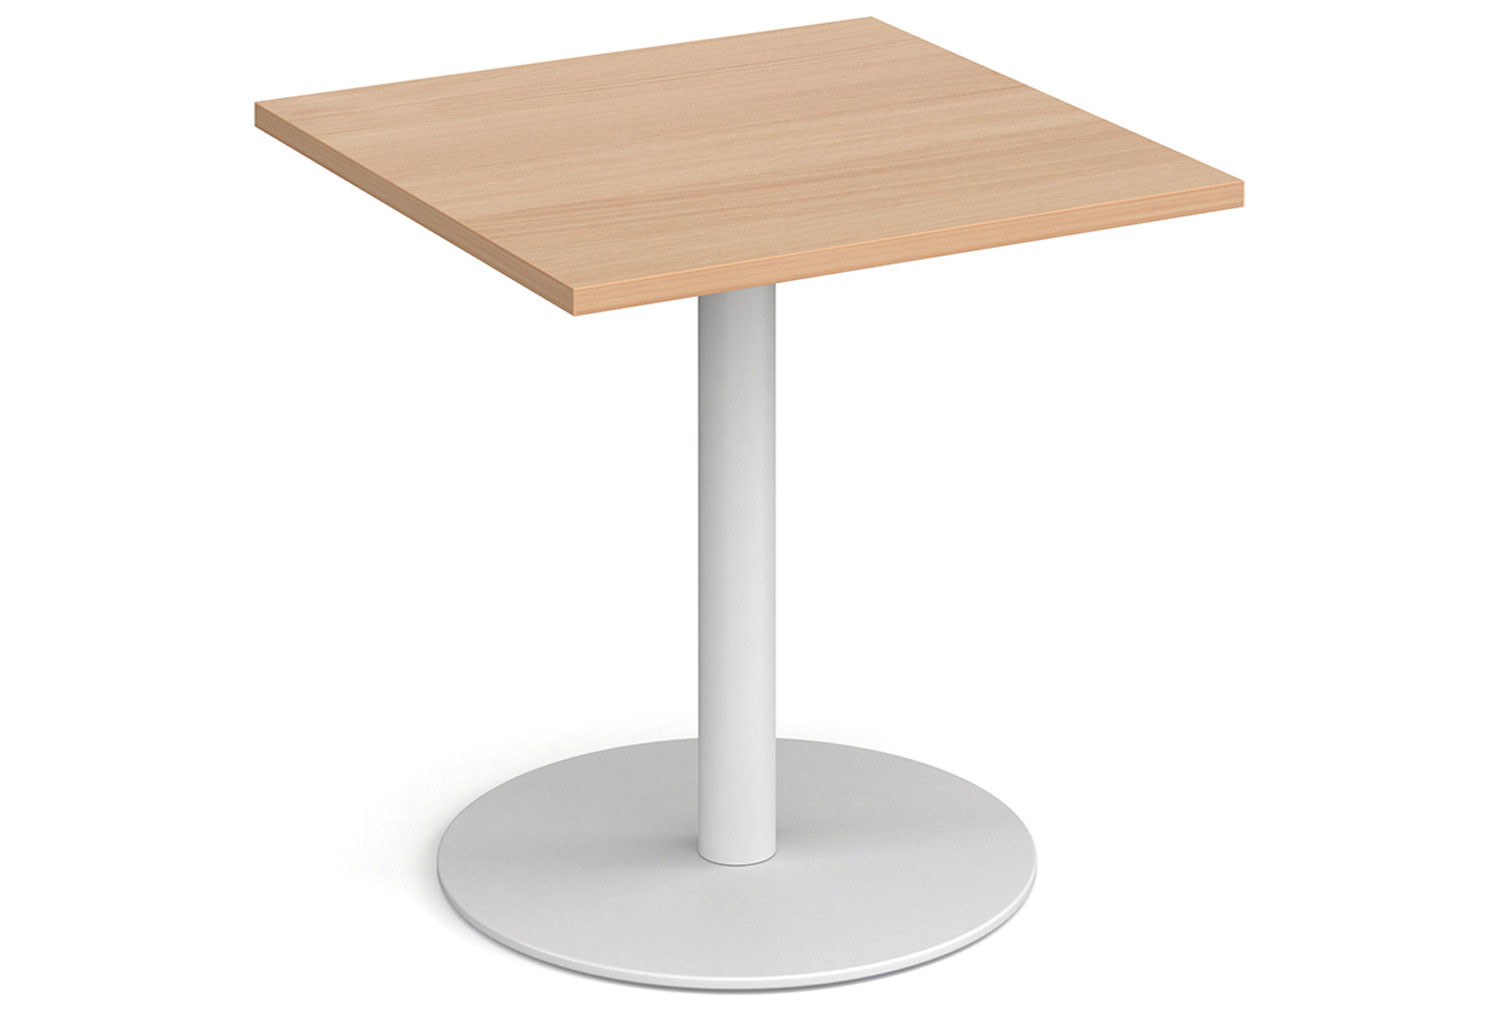 Tolson Square Dining Table